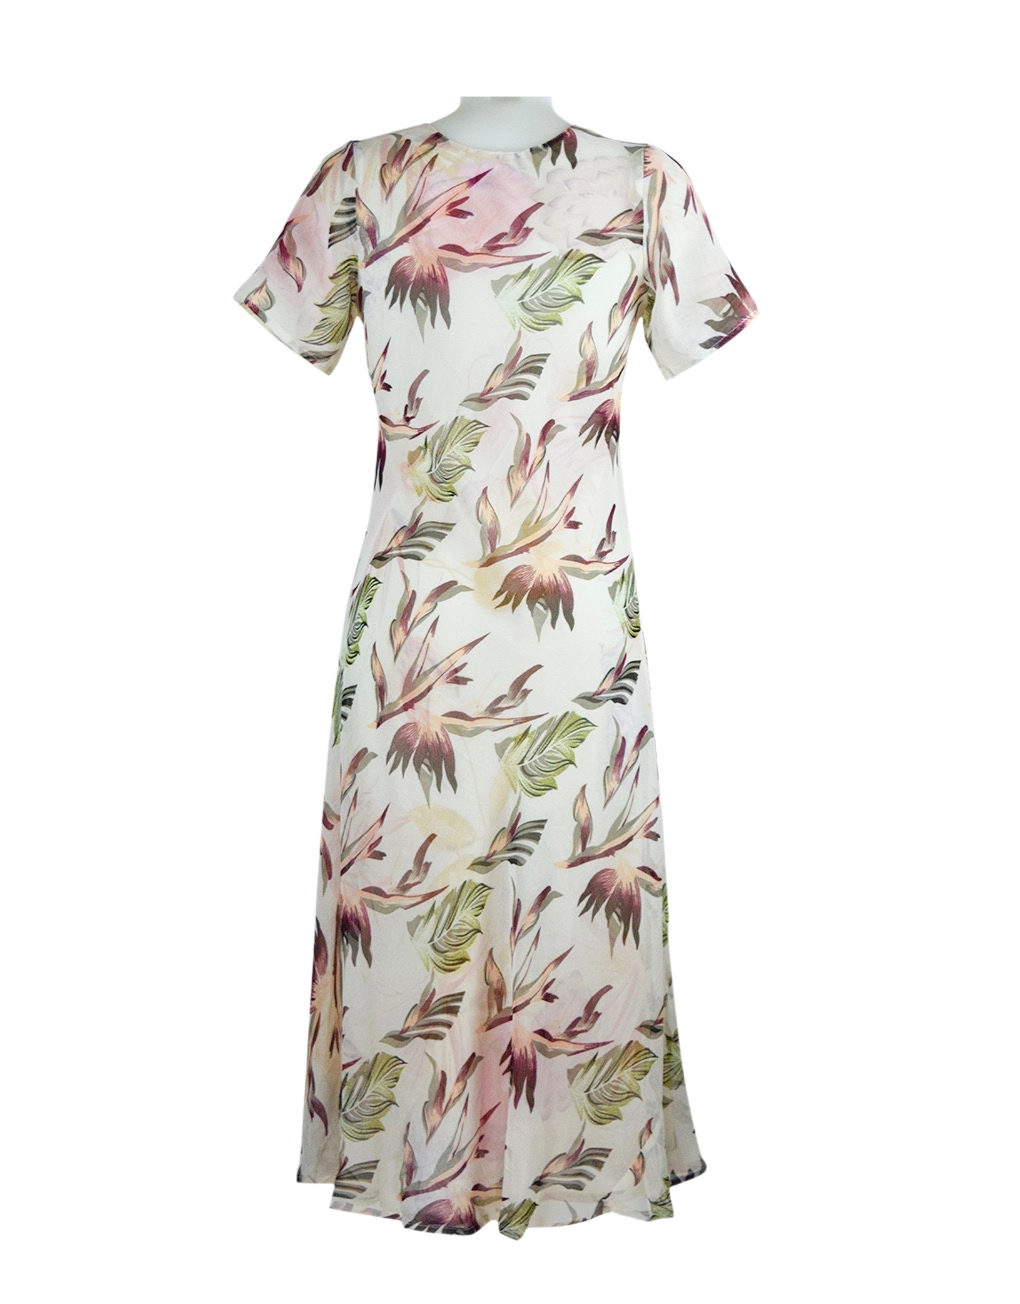 Paramour Reversible 2 in 1 Short Sleeve Dress Peach/Ivory